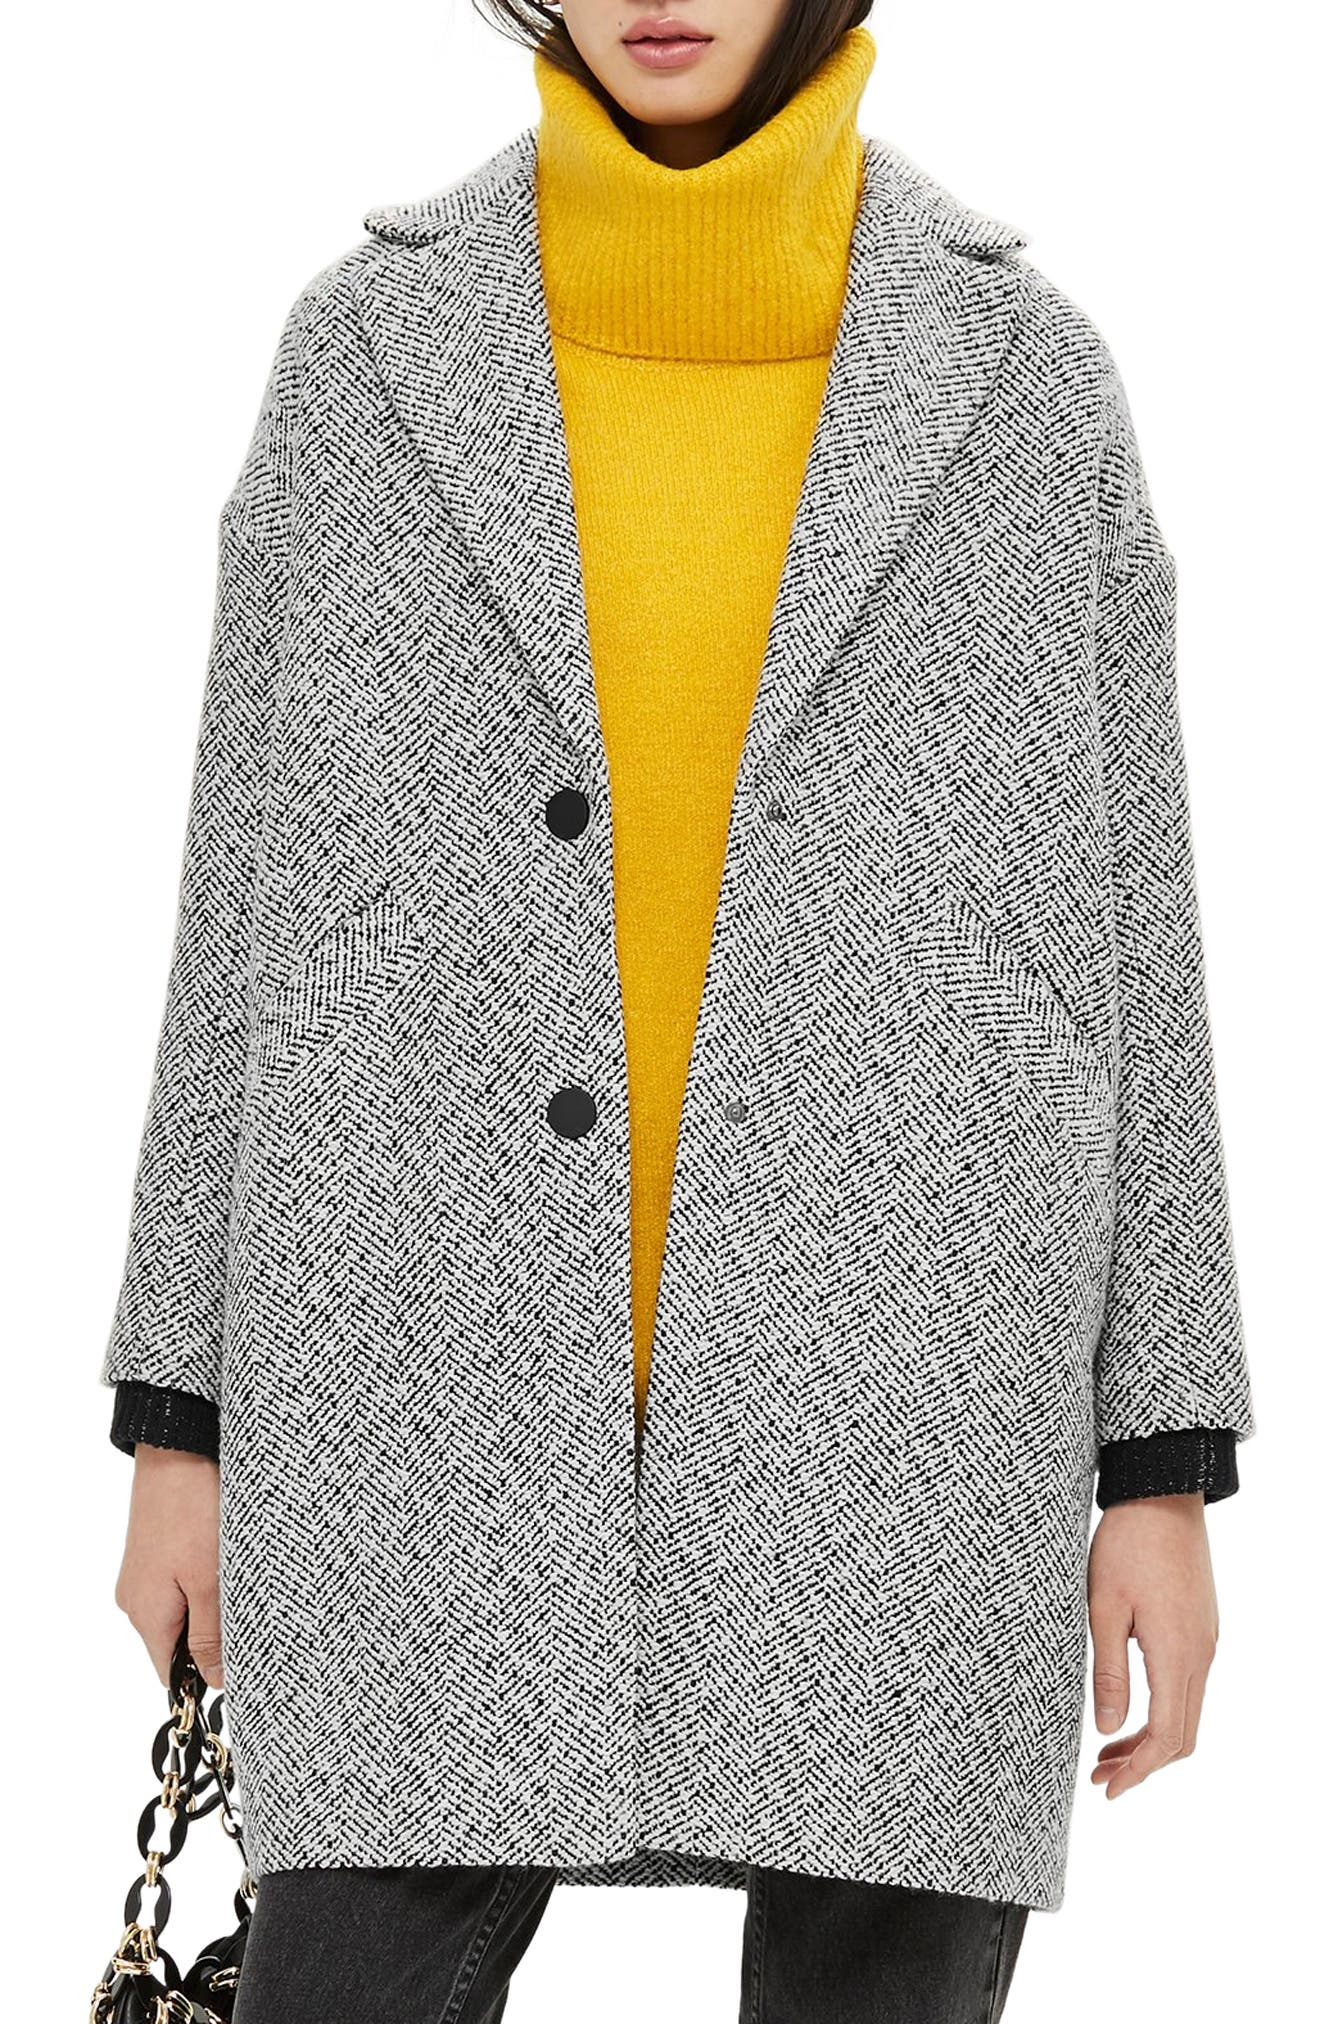 Herringbone Check Coat,                             Main thumbnail 1, color,                             GREY MULTI